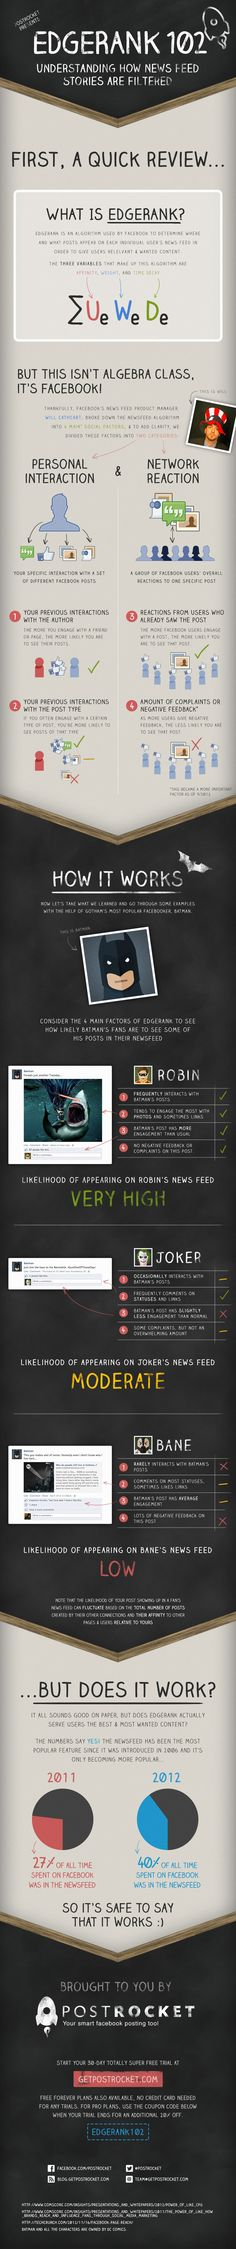 Facebook Algorithm explained, Batman style.